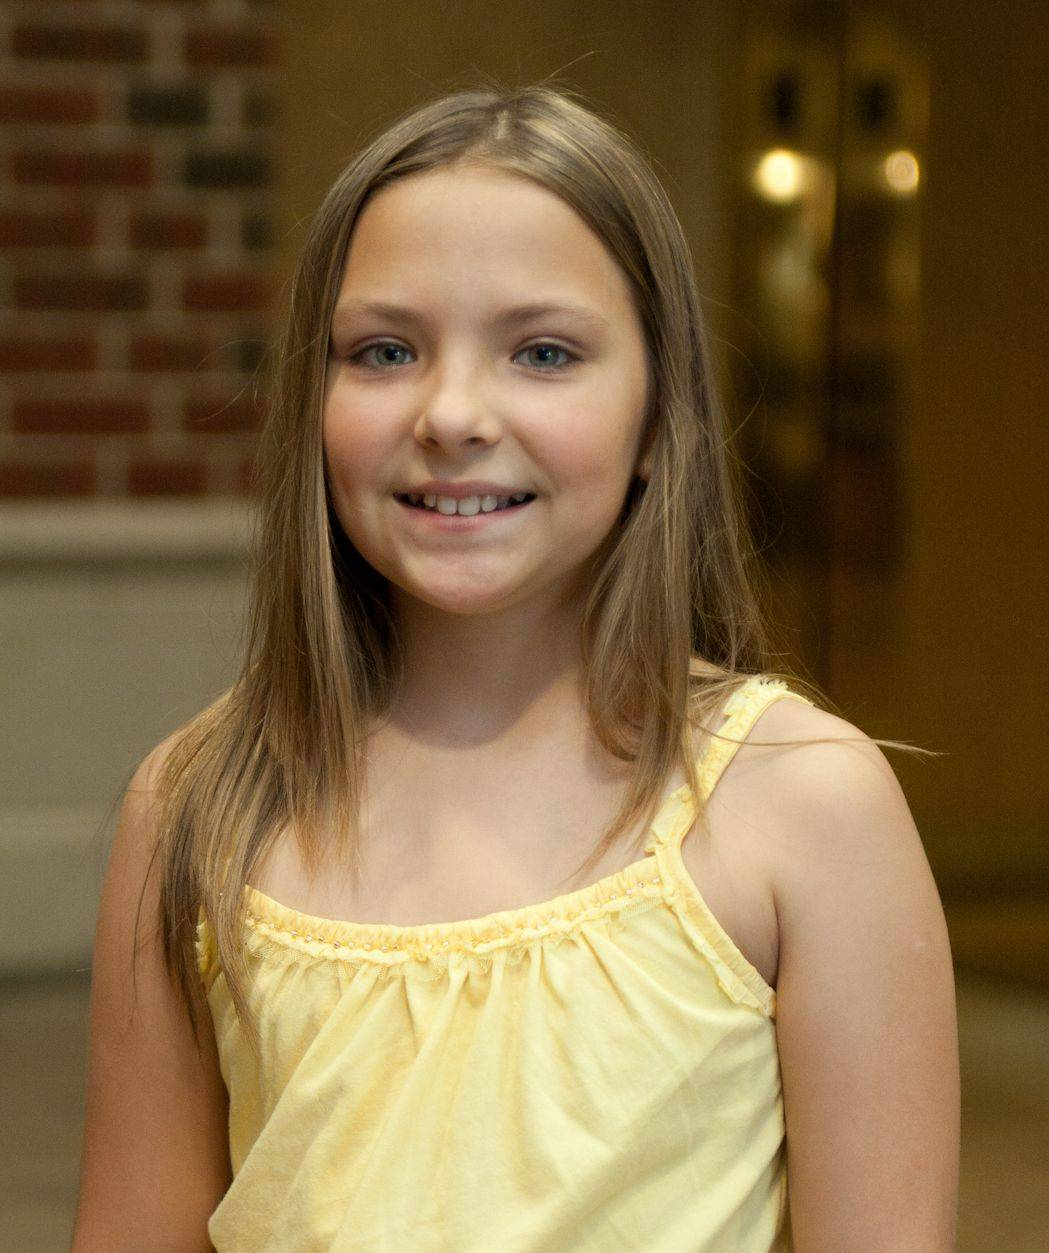 Suburban Chicago's Got Talent top 20 finalist Agne Giedraityte (Agne G), 10, of Downers Grove.